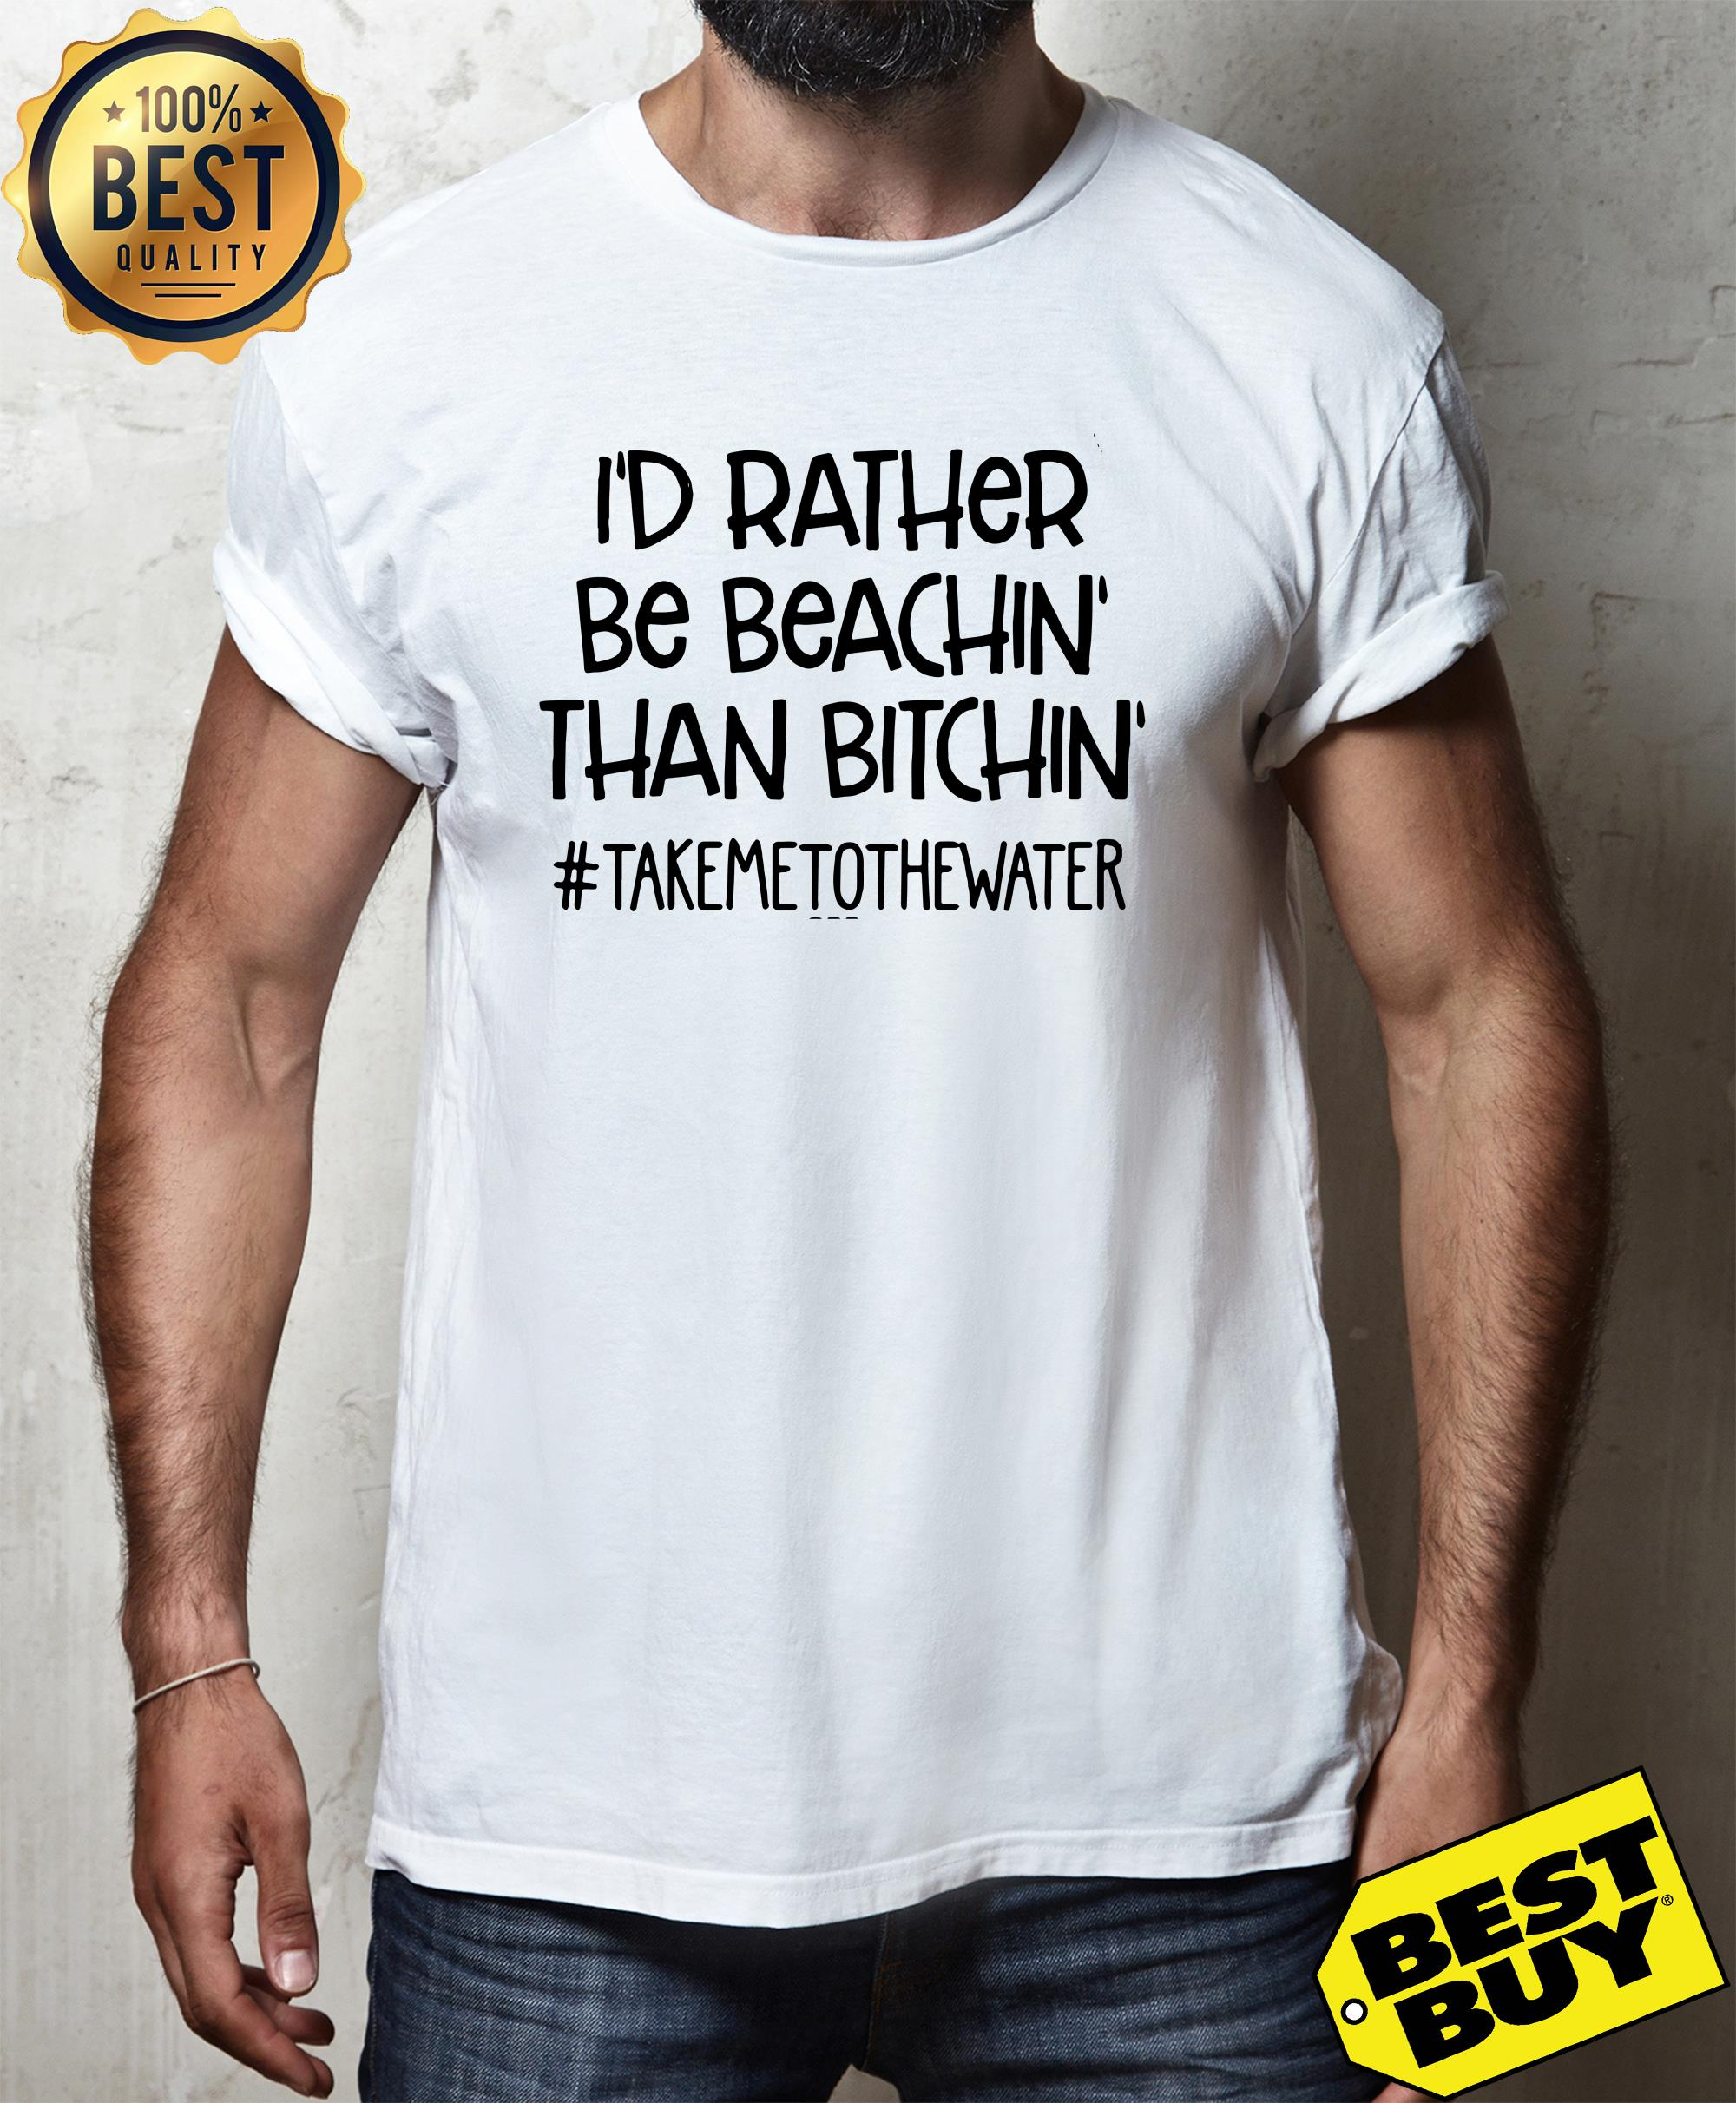 I'd rather be beachin than bitchin #takemetothewater shirt